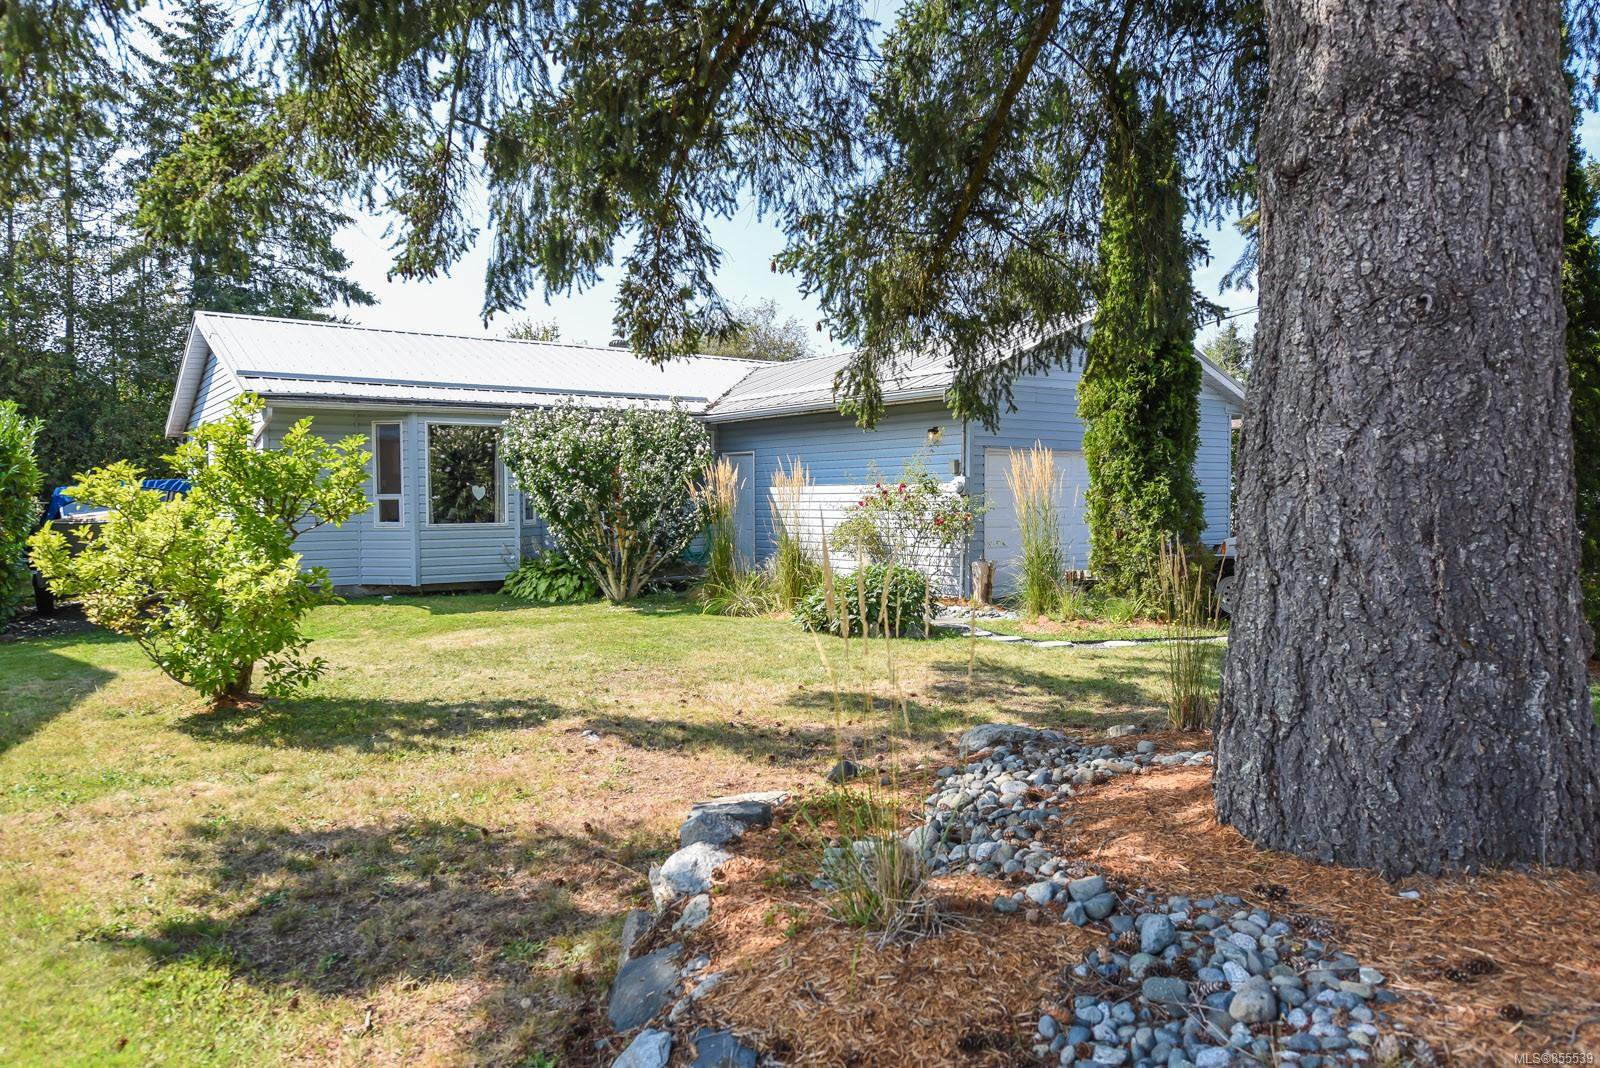 Main Photo: 2309 Willemar Ave in : CV Courtenay City Single Family Detached for sale (Comox Valley)  : MLS®# 855539